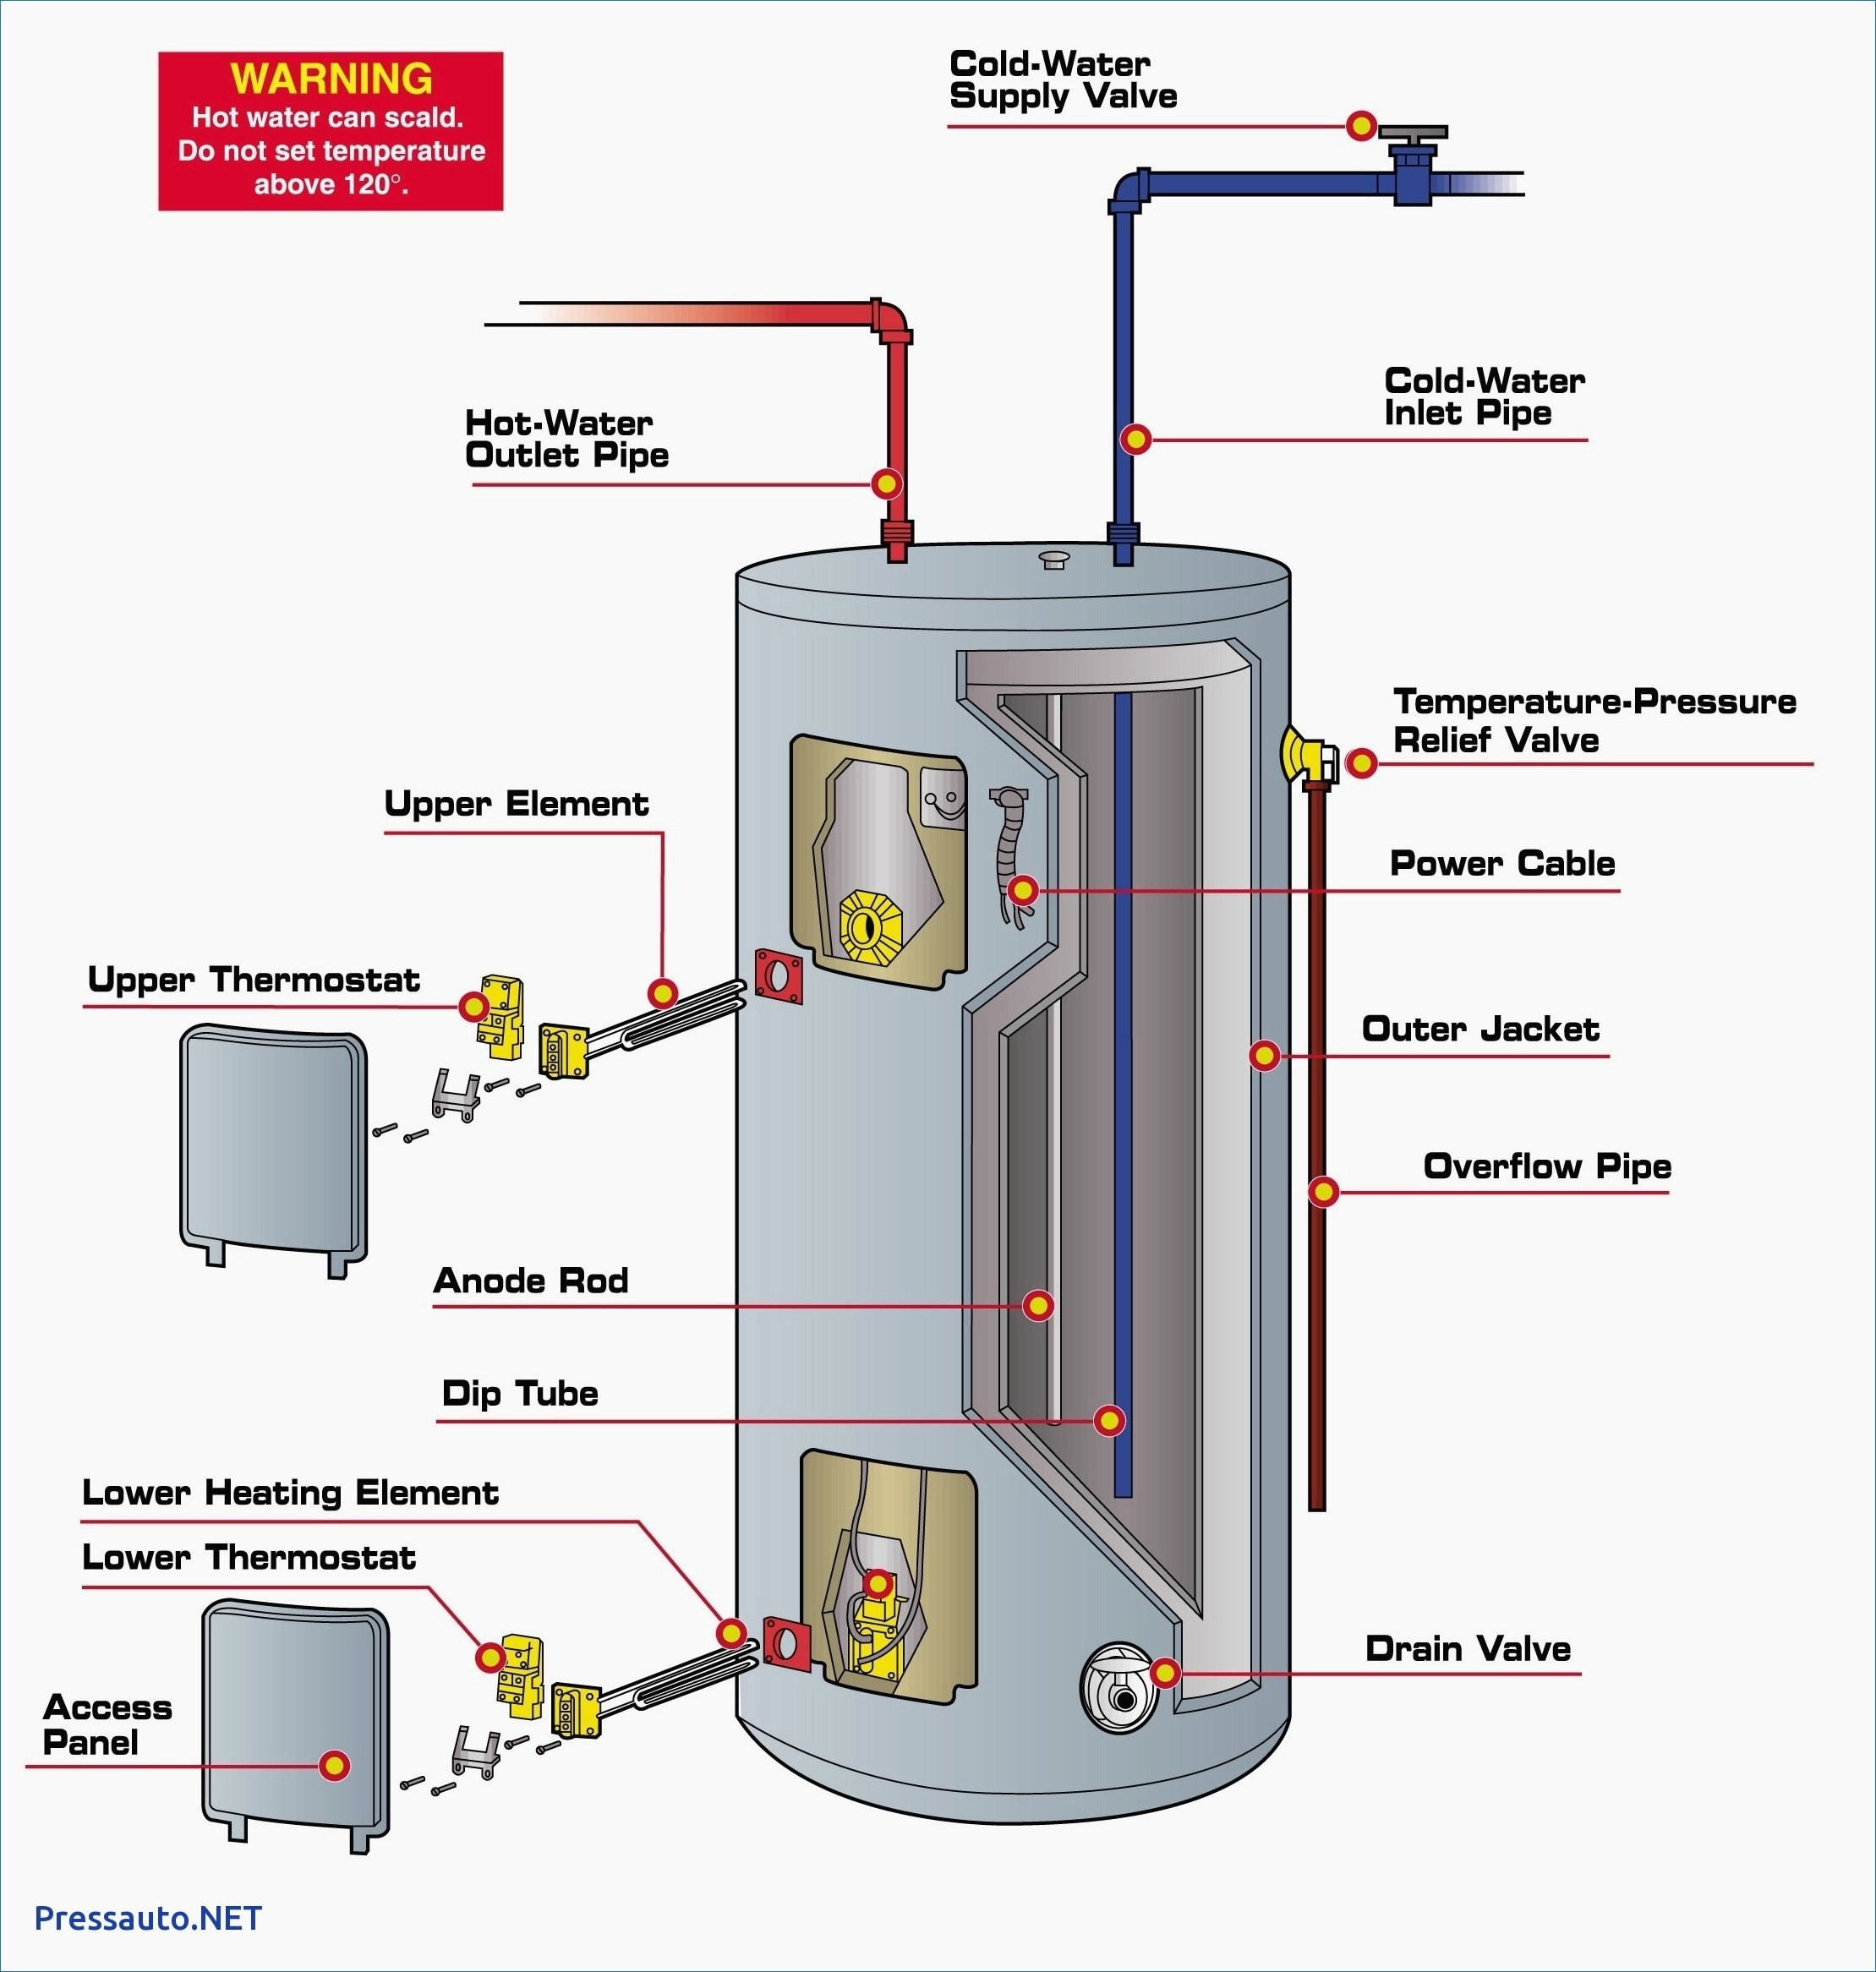 electric water heater wiring diagram Collection-Wiring Diagram Electric Water Heater Fresh New Hot Water Heater Wiring Diagram Diagram 13-l